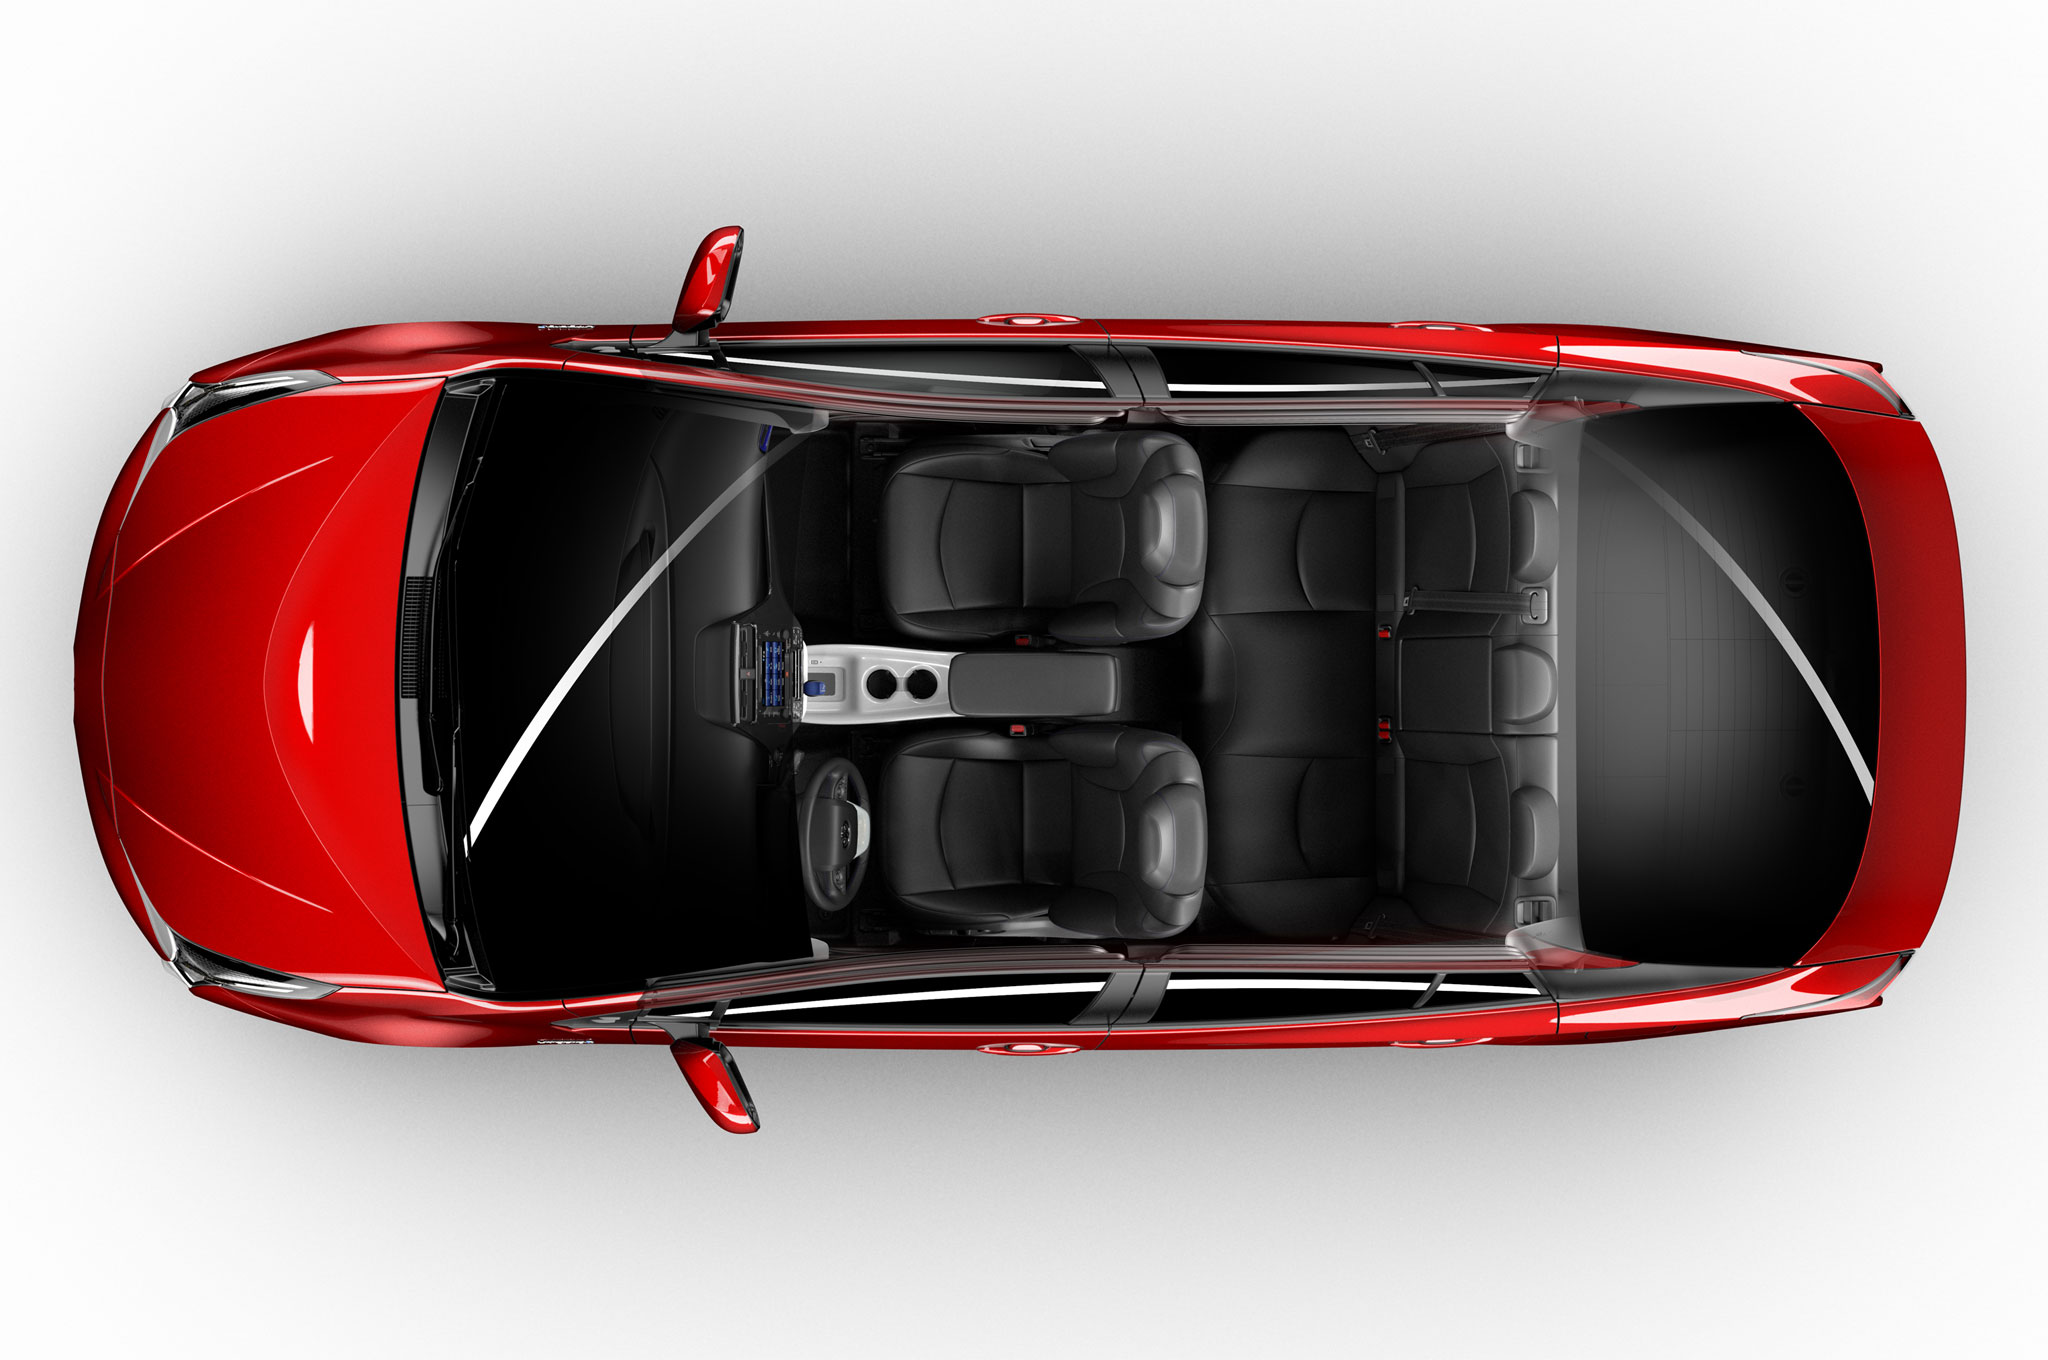 2016-toyota-prius-from-above-cutaway